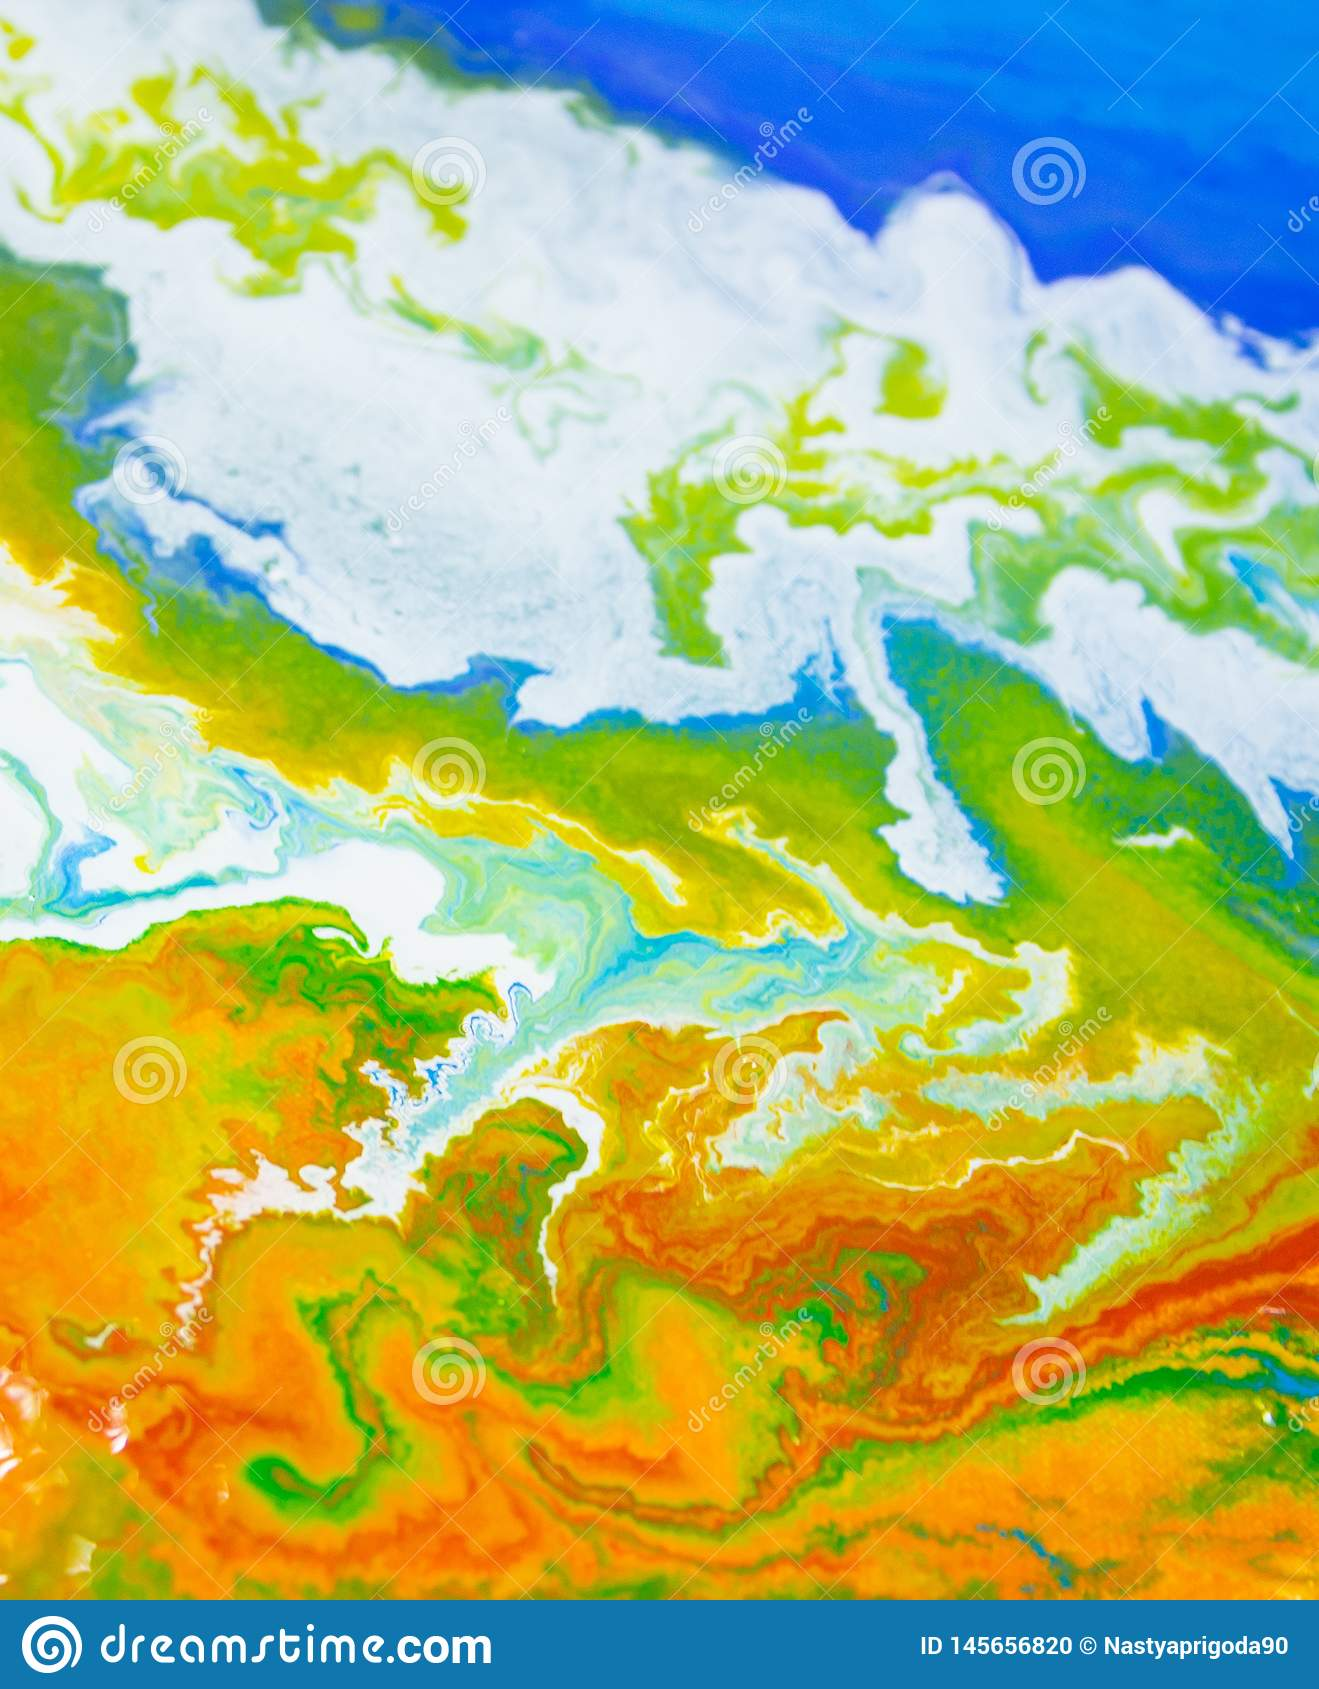 Abstraction earth planet fluid art